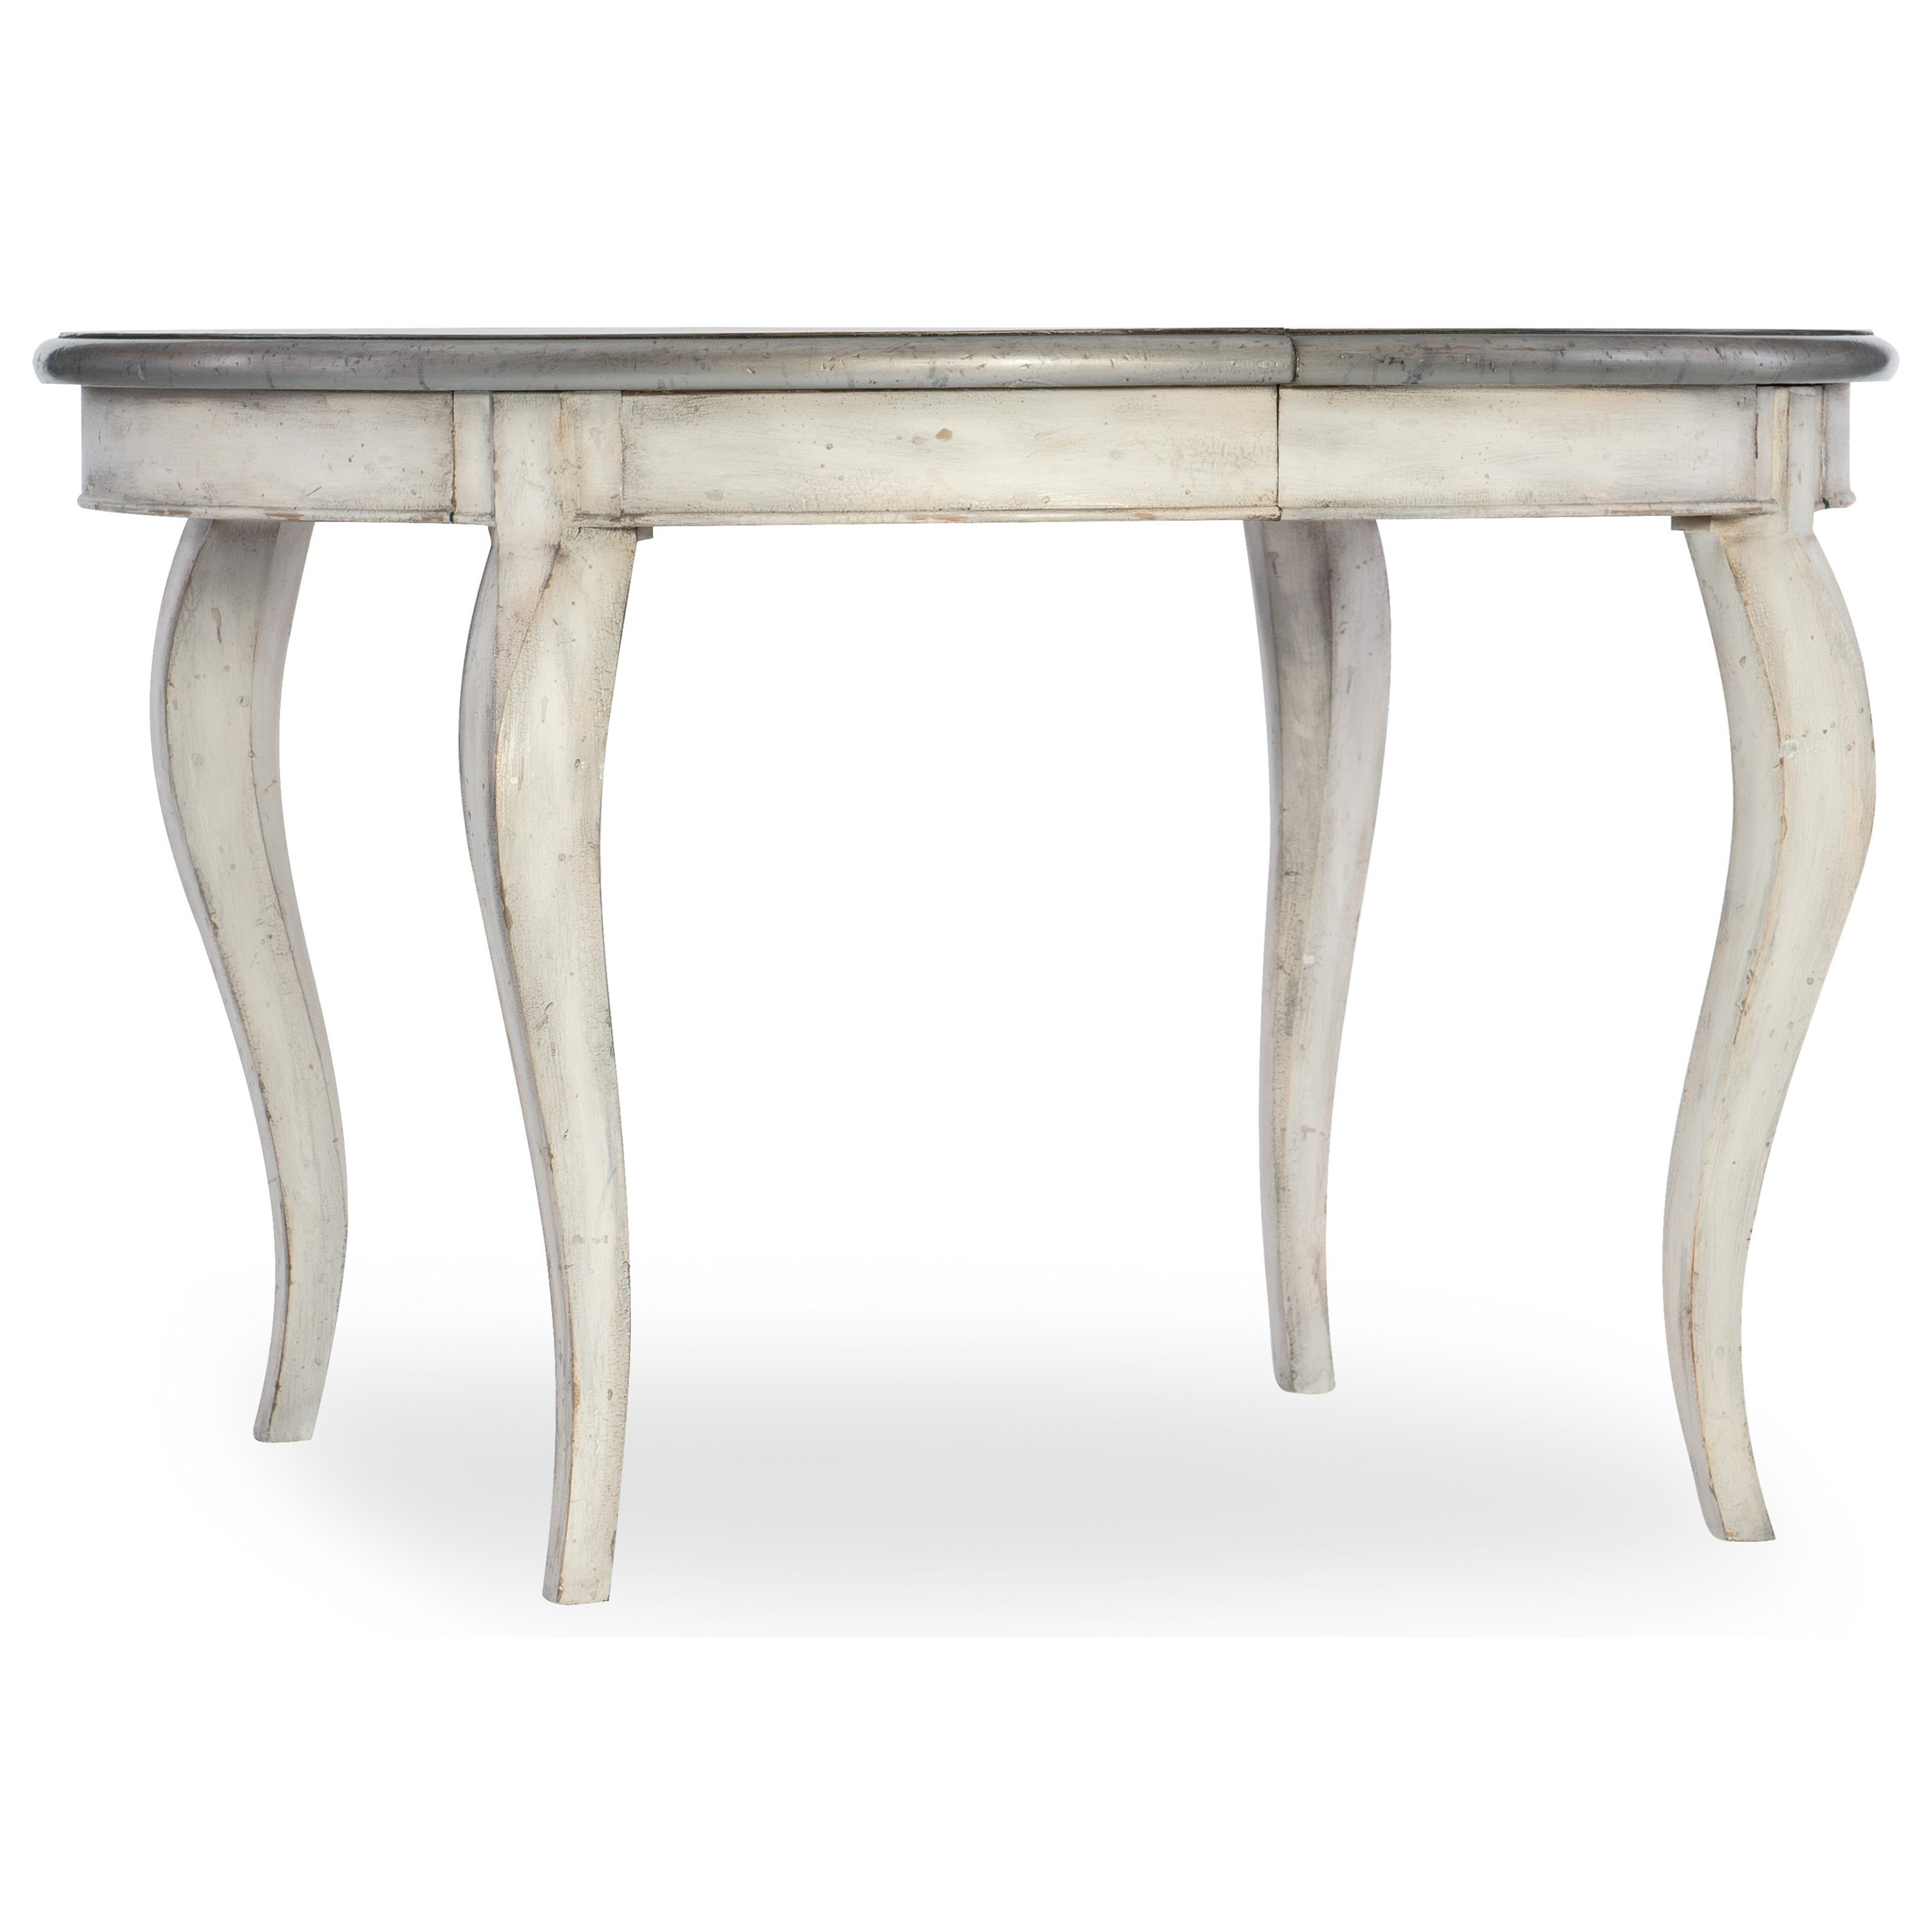 Arabella 48in Round Leg Table with 1-20in leaf by Hooker Furniture at Stoney Creek Furniture